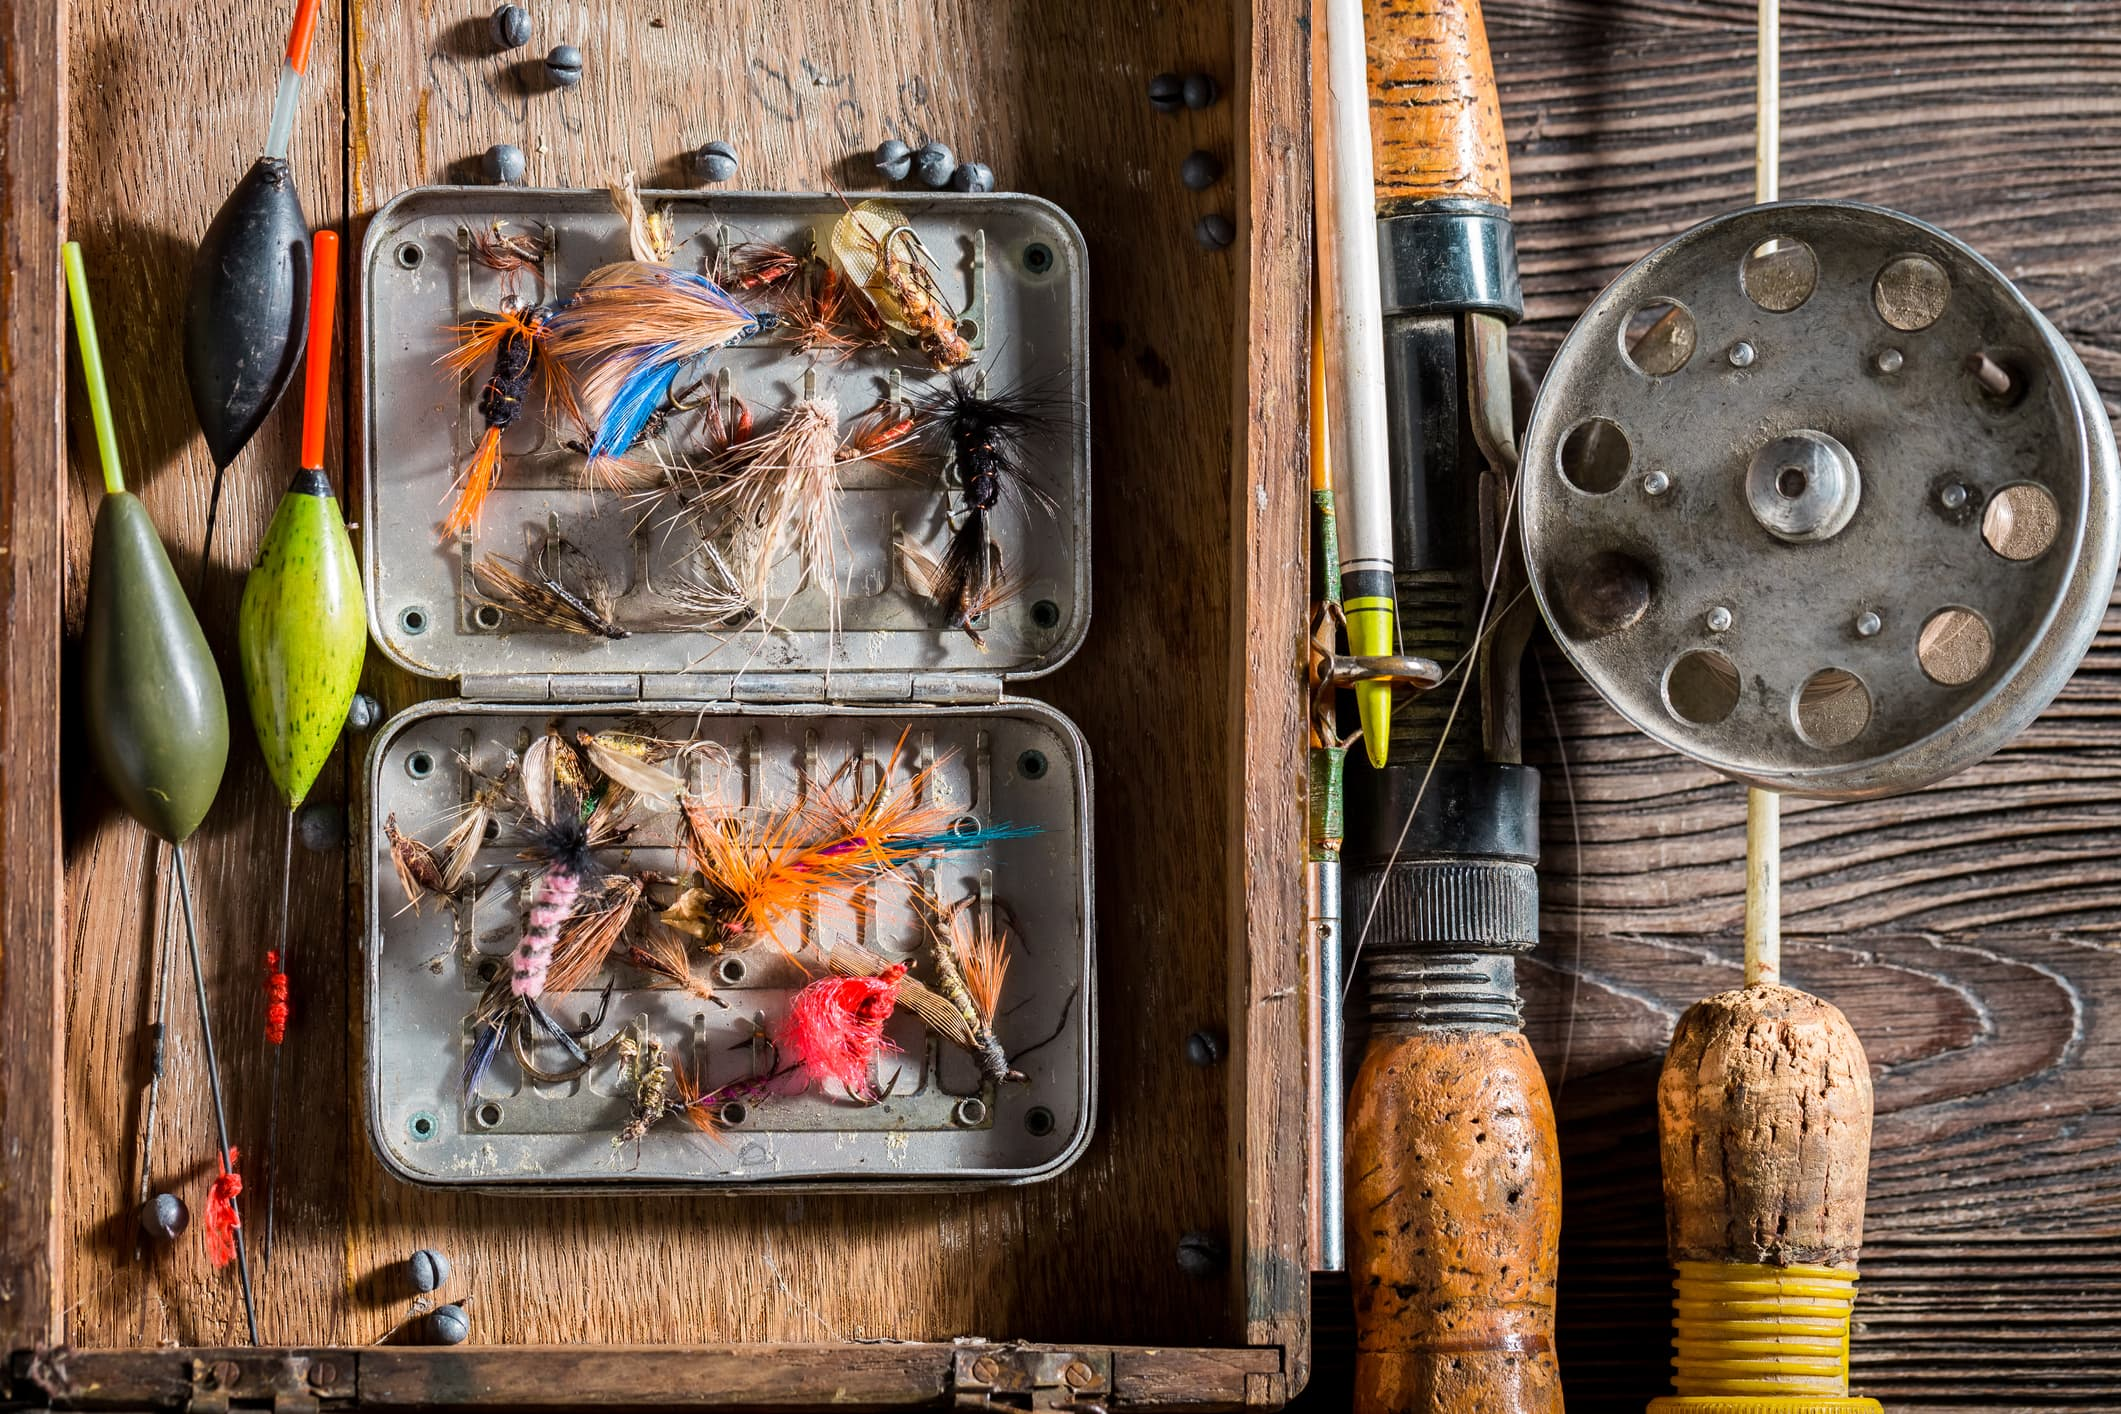 Angler equipment with lures and fishing rod